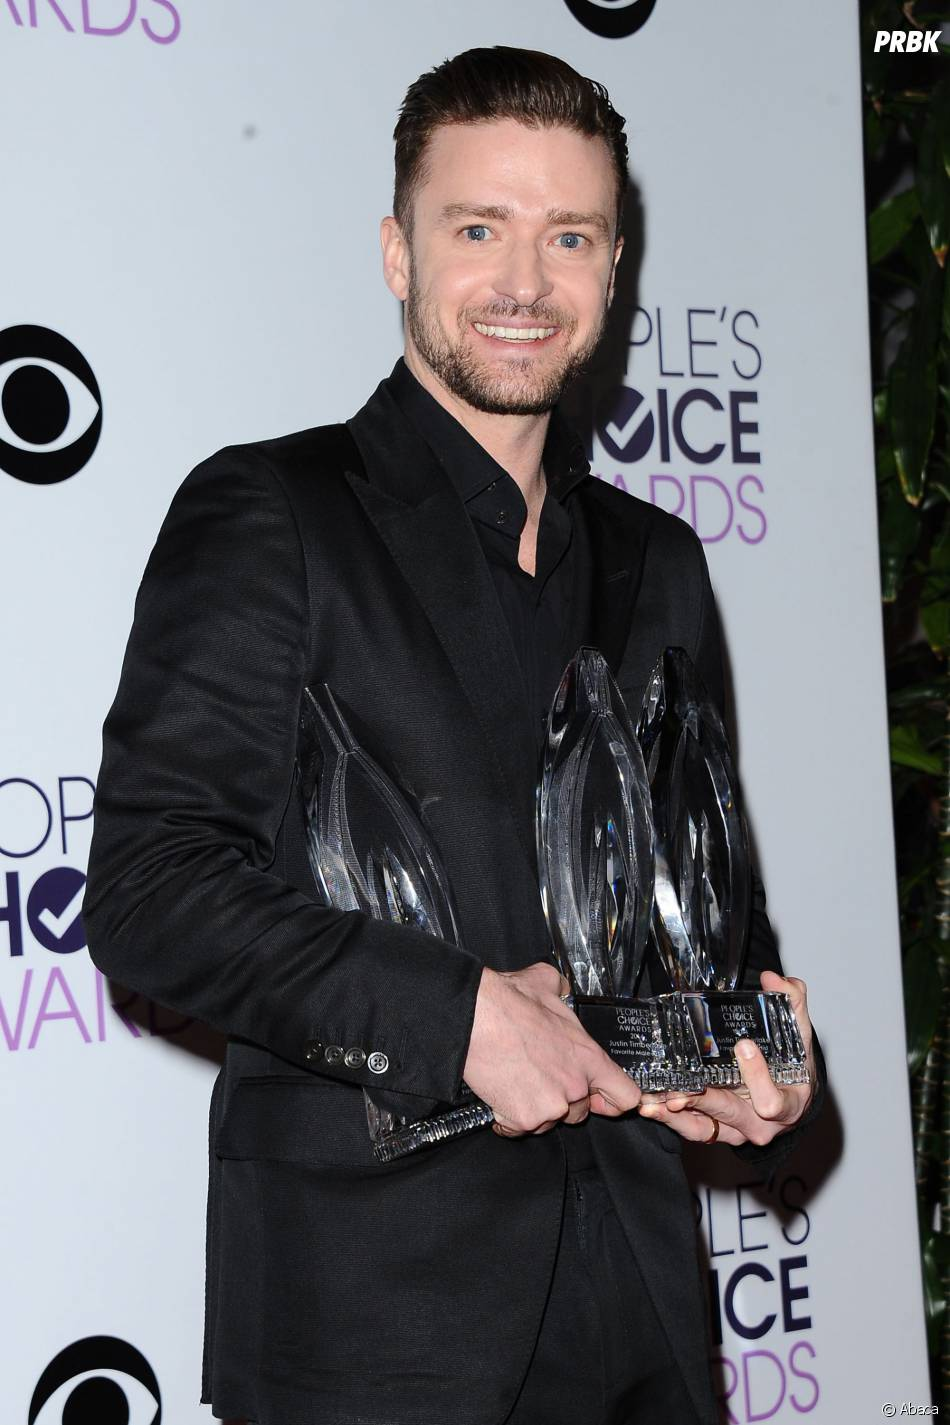 People's Choice Awards 2014 : Justin Timberlake sur le tapis-rouge le 8 janvier 2014 à Los Angeles